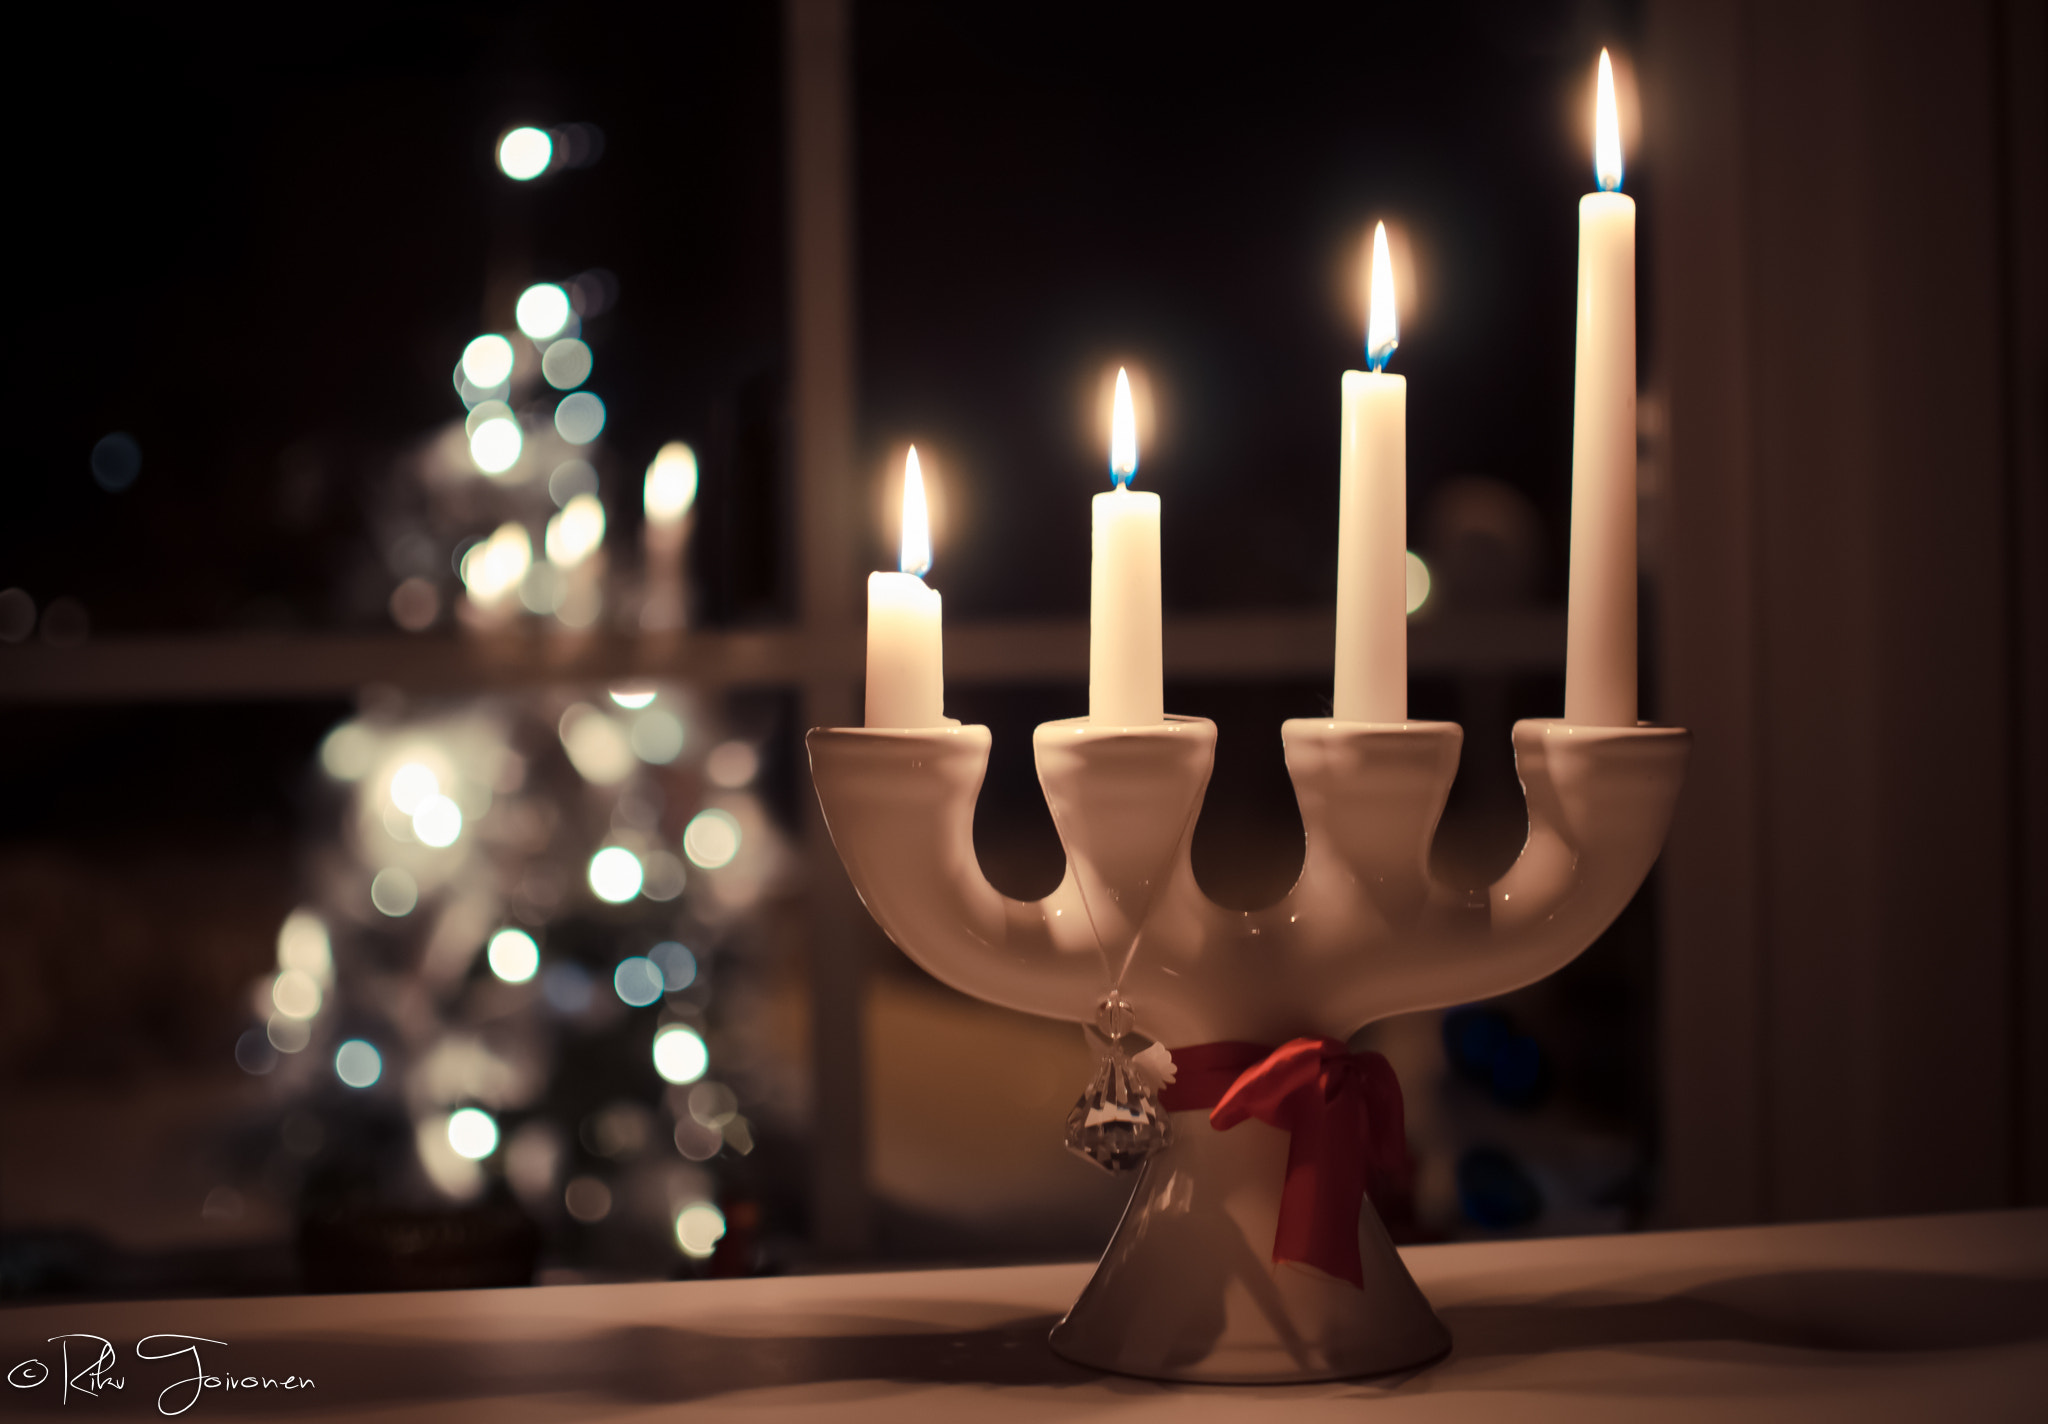 Photograph Christmas Candles by Riku Toivonen on 500px